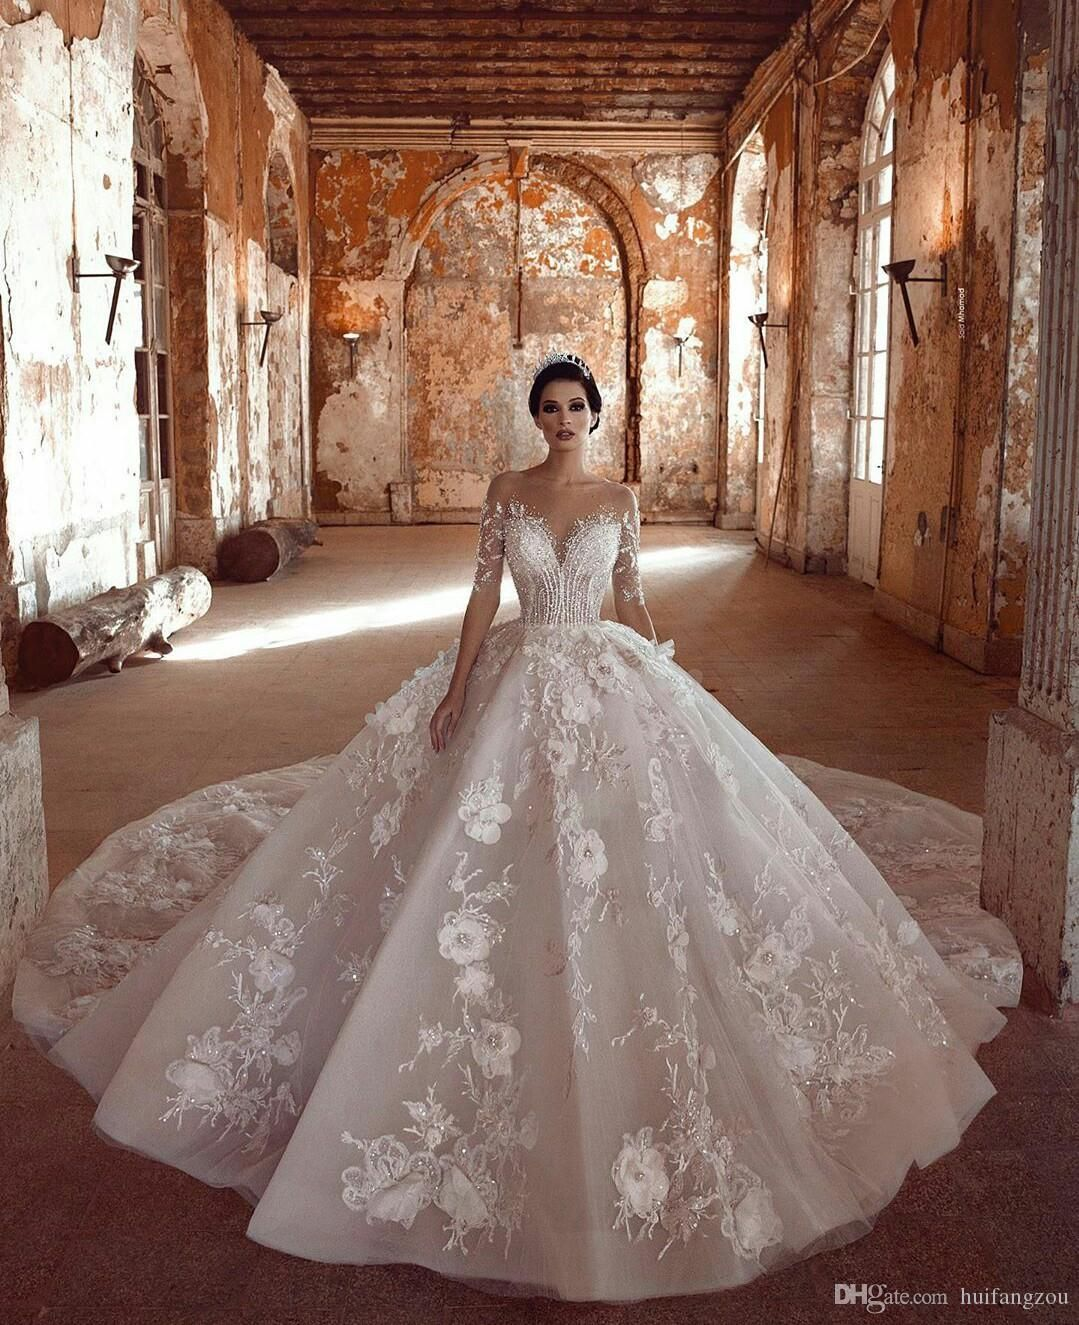 Luxurious Sparkly 2019 African Wedding Dresses Sheer Neck Long Sleeves Bridal Dresses Beaded Sequ Sheer Wedding Dress Arabic Wedding Dresses Satin Wedding Gown [ 1325 x 1079 Pixel ]